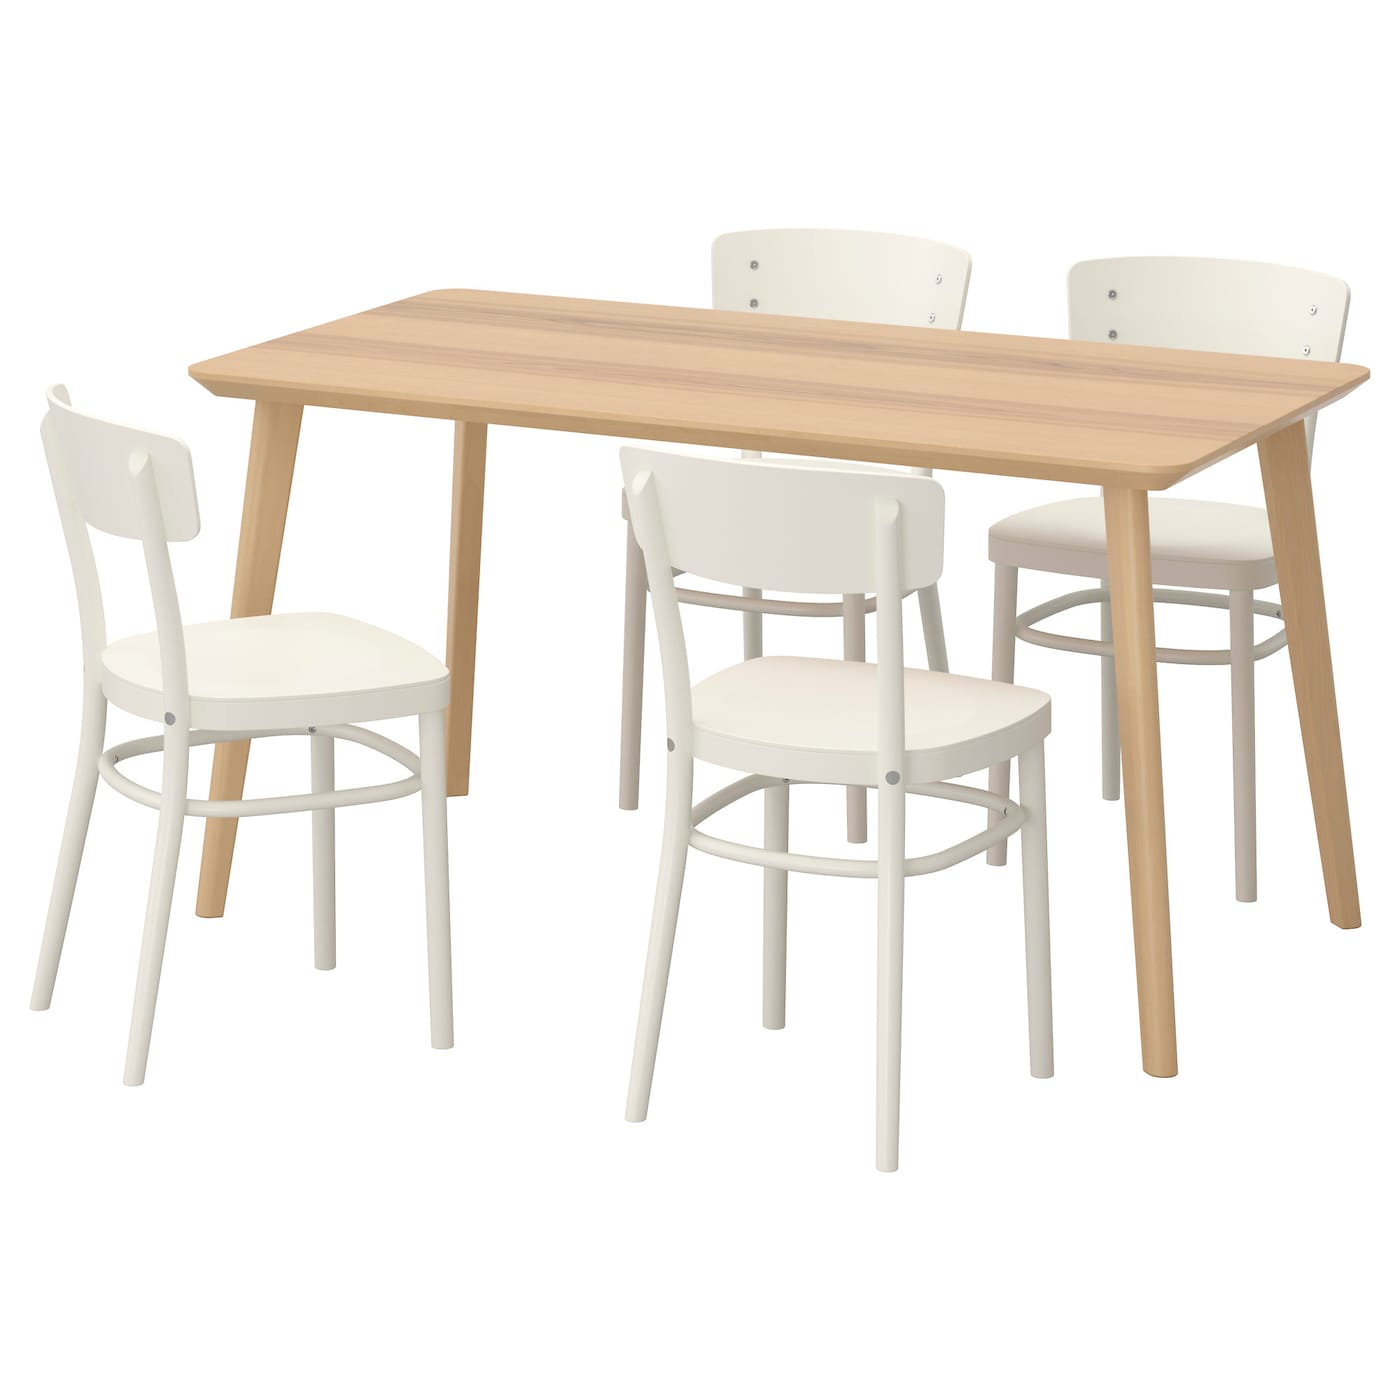 idolf lisabo table and 4 chairs ash veneer white 140 x 78 cm ikea. Black Bedroom Furniture Sets. Home Design Ideas